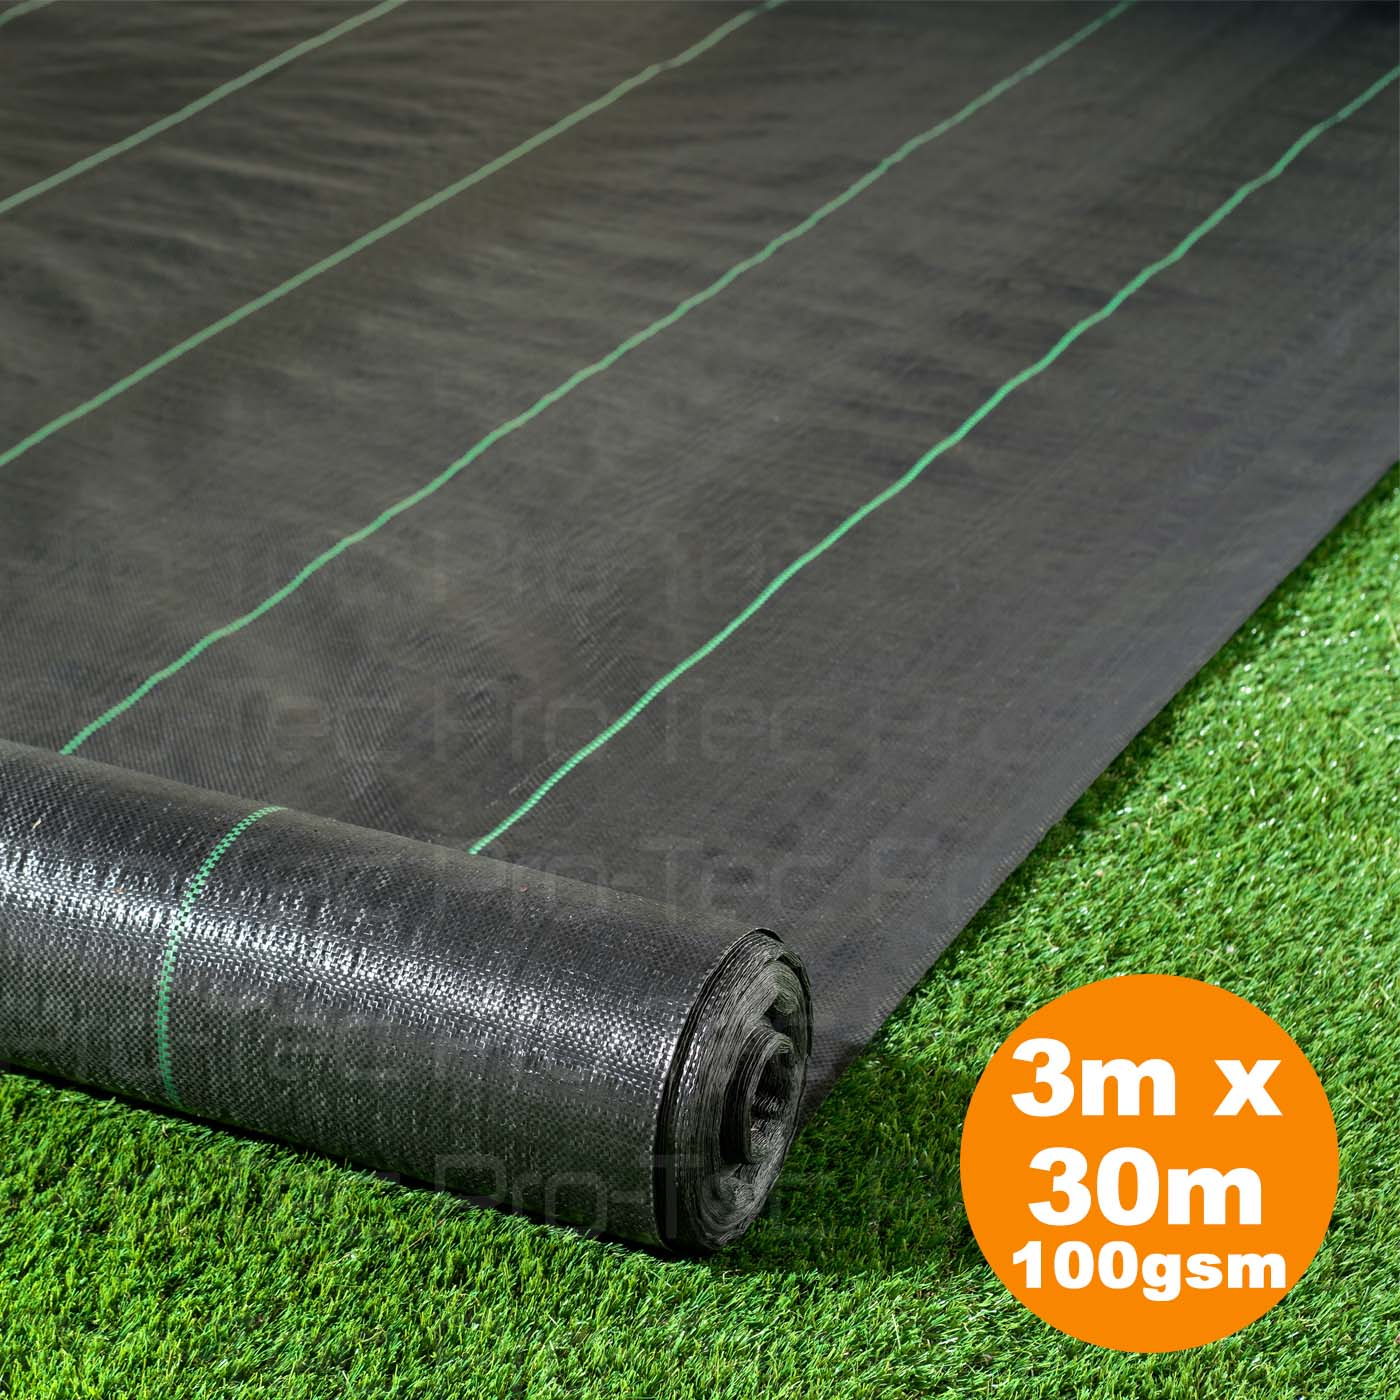 Picture of 3m x 30m Weed Control Landscape Fabric